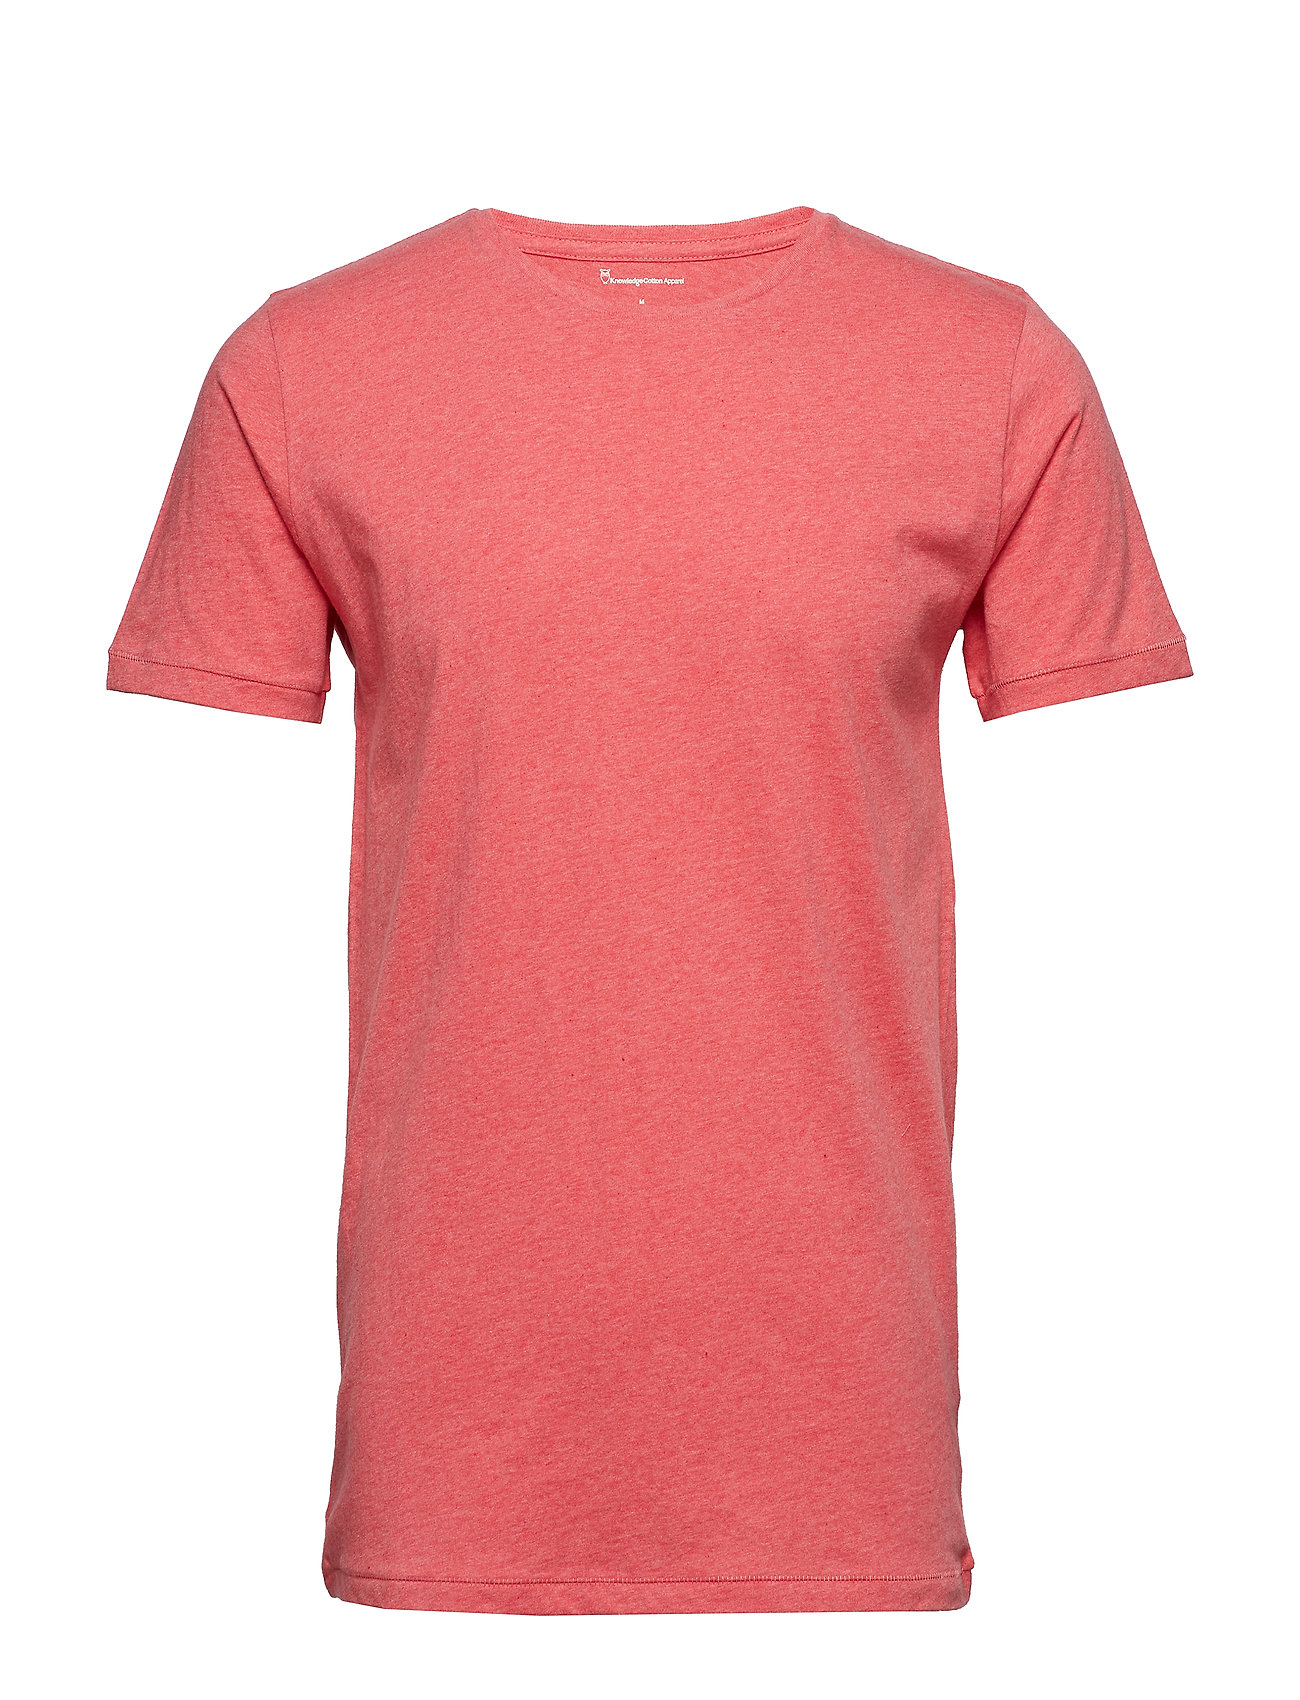 Knowledge Cotton Apparel ALDER basic tee - GOTS/Vegan - CORAL MELANGE